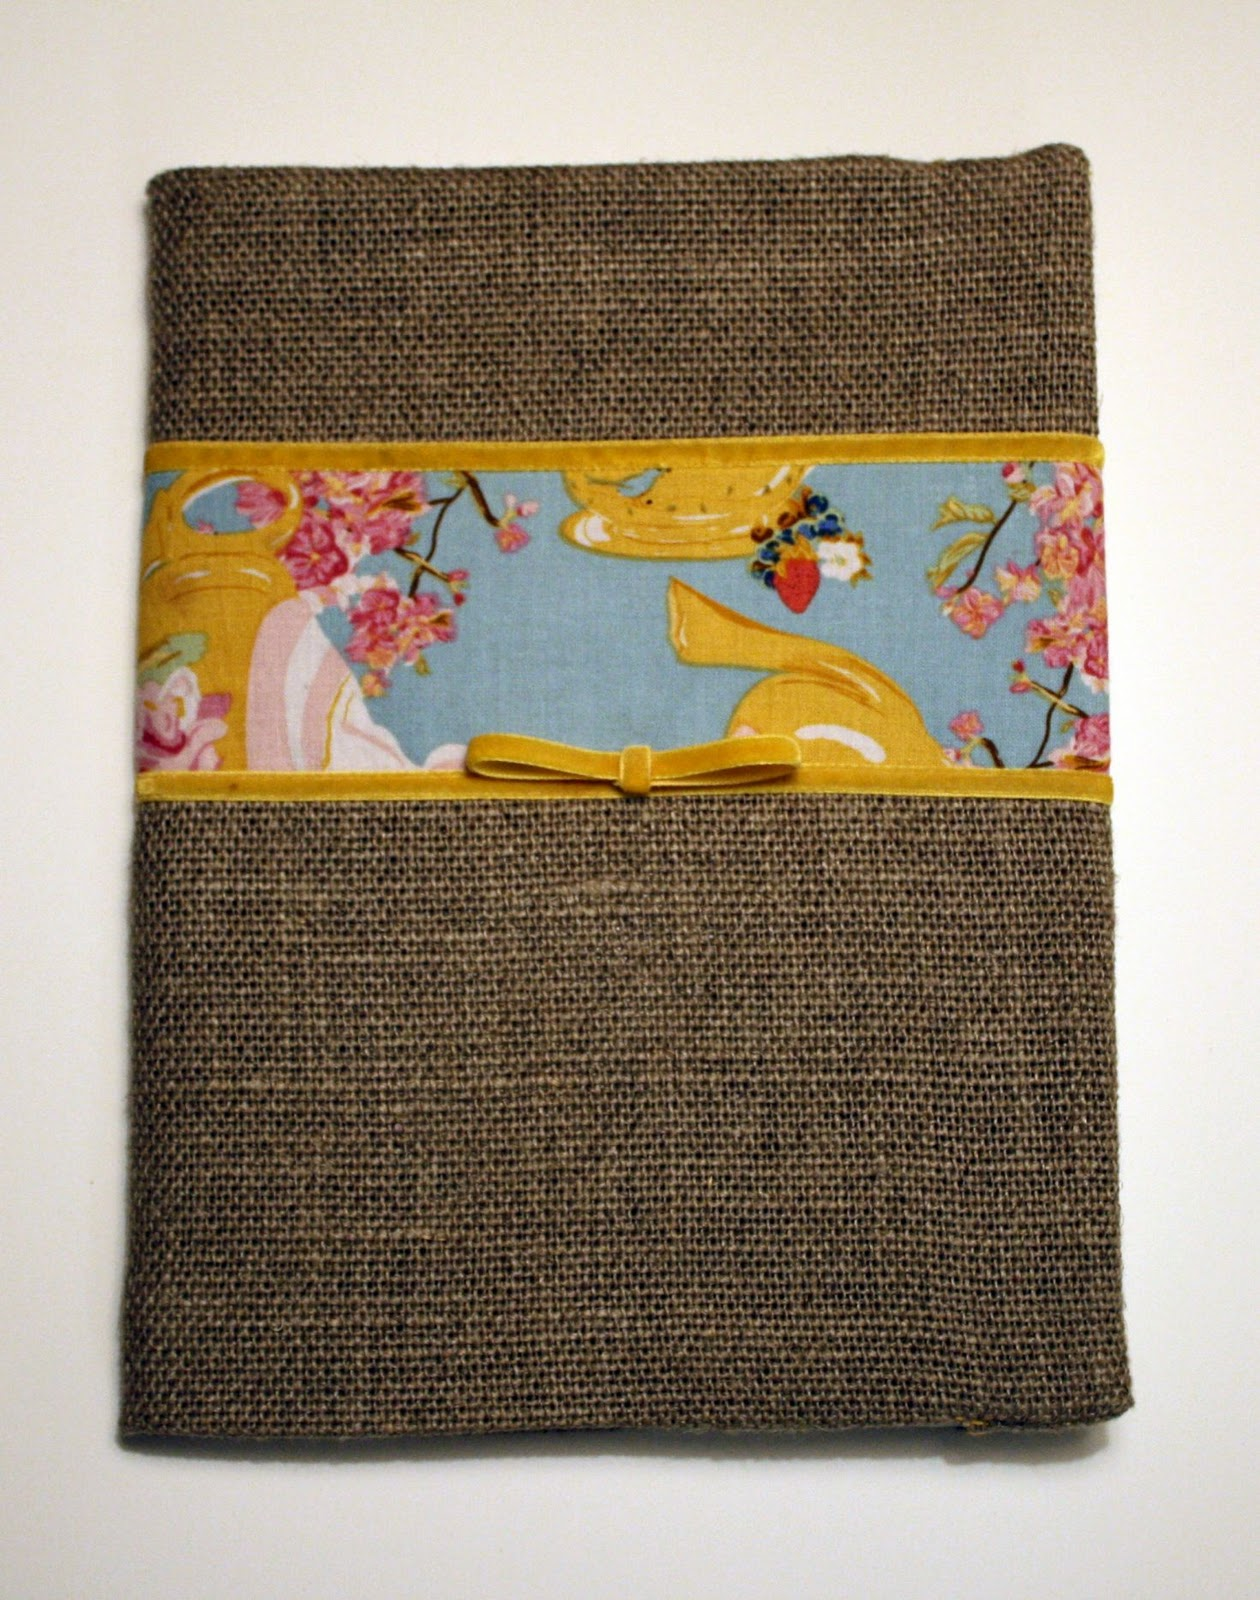 Sewn Book Cover Tutorial : Sew grown book or journal cover tutorial